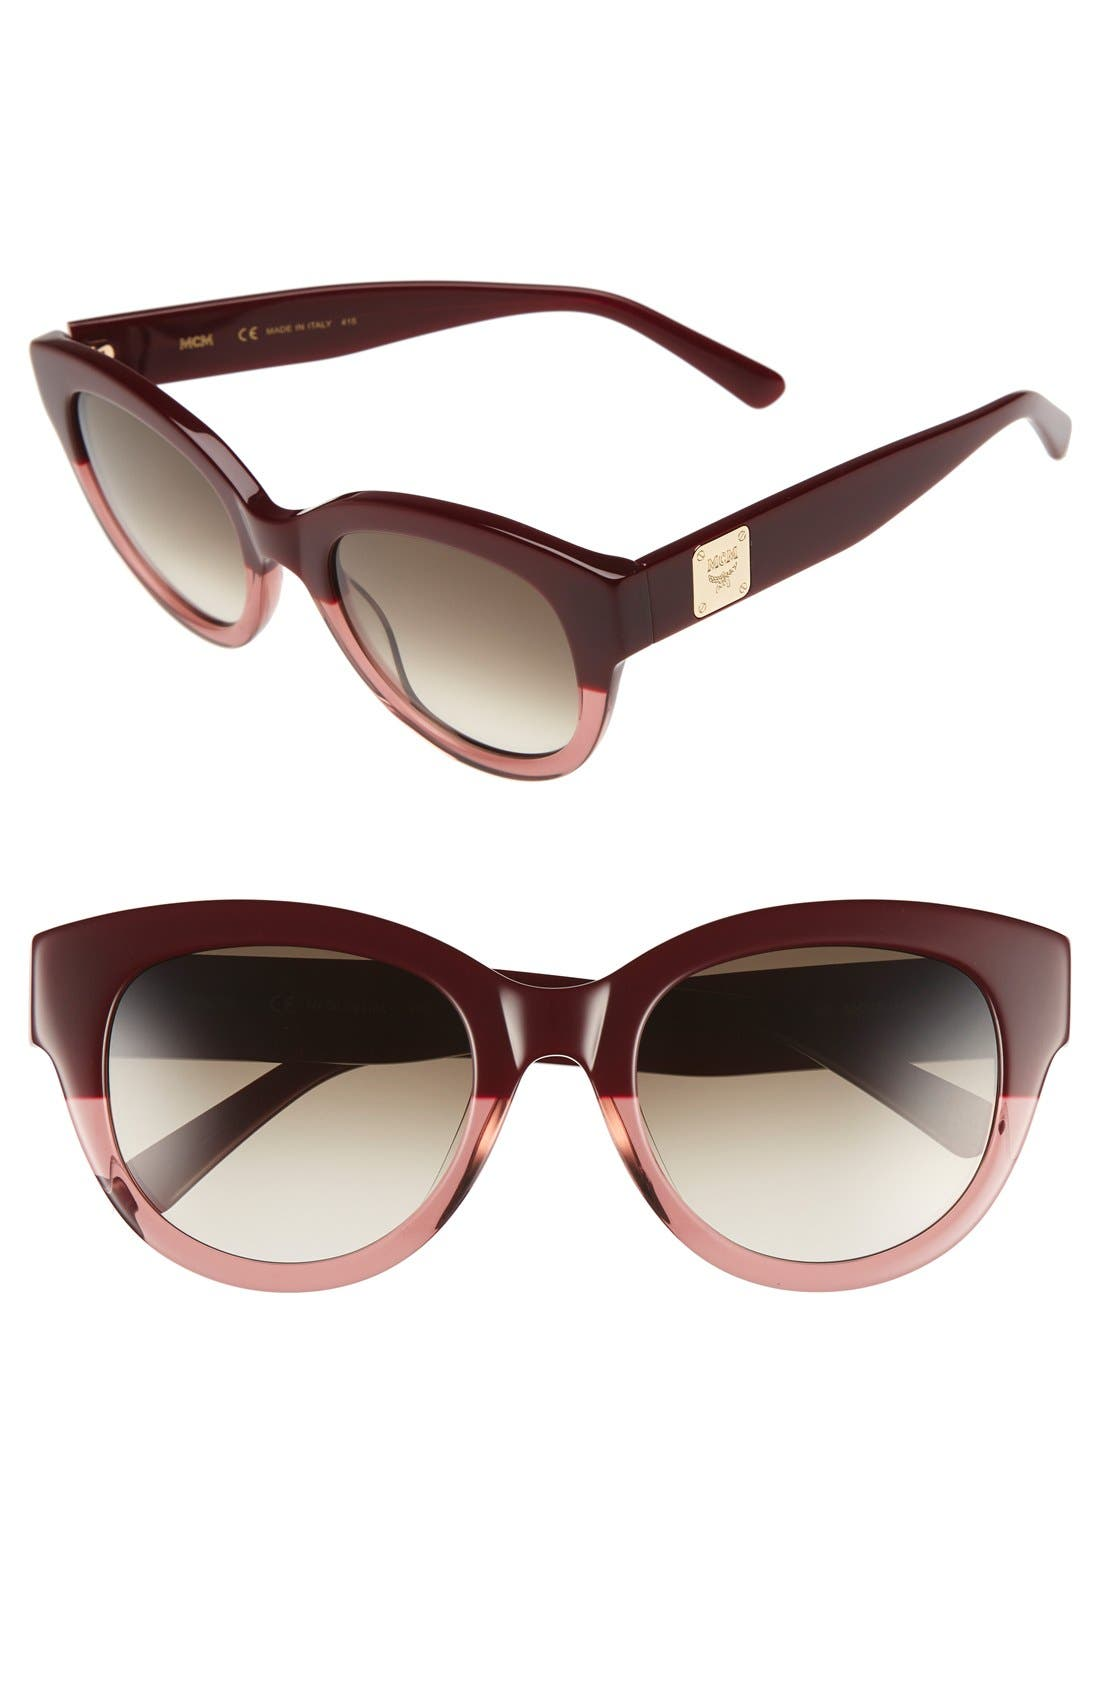 53mm Cat Eye Sunglasses,                         Main,                         color, Bordeaux/ Antique Rose